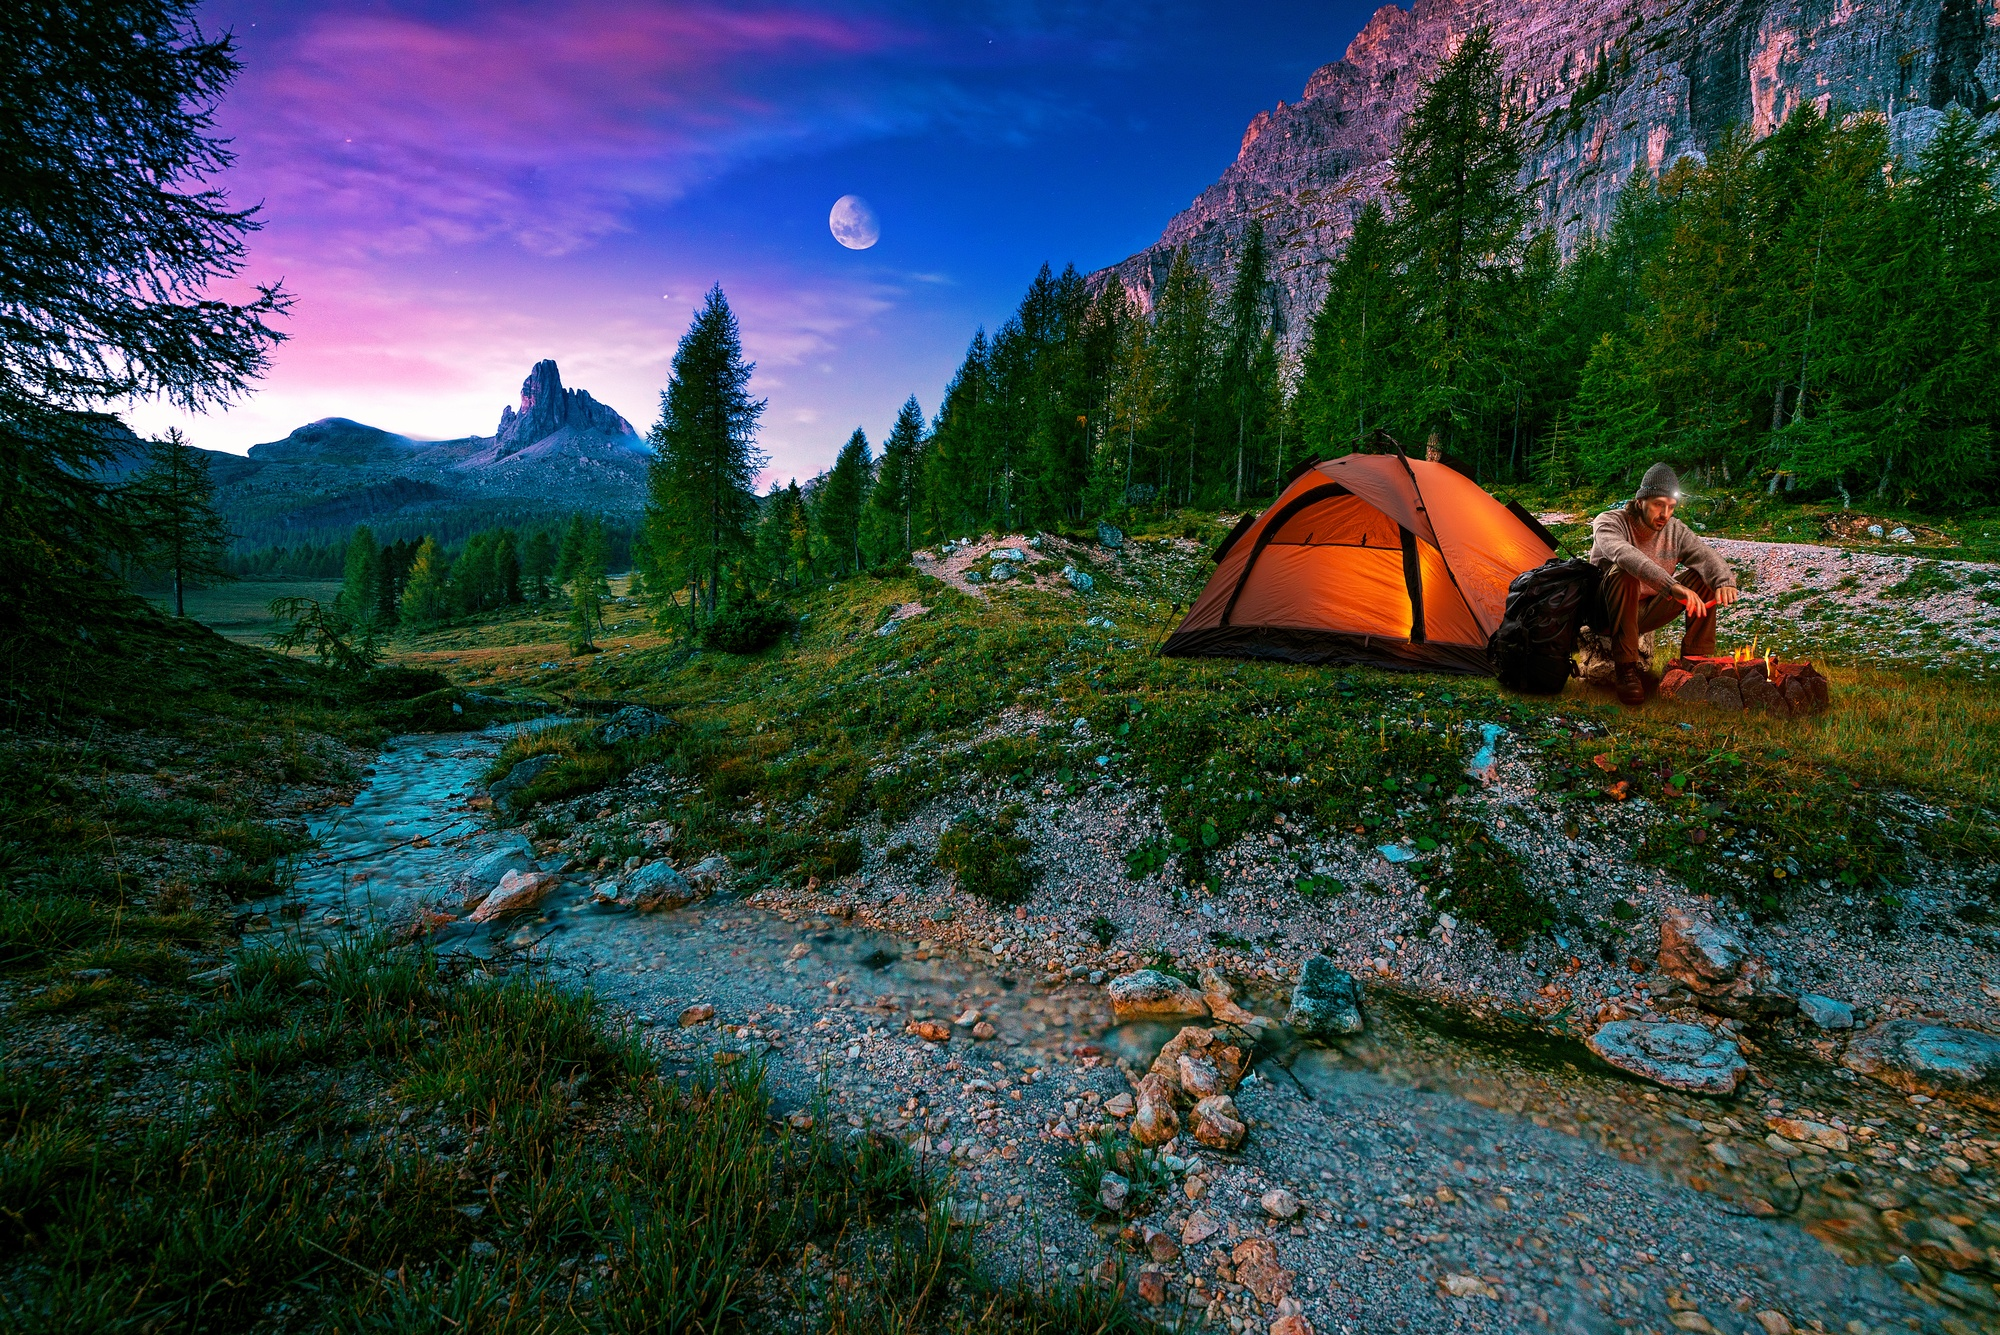 Best Coleman Tents – A Look at The Top Series They Offer